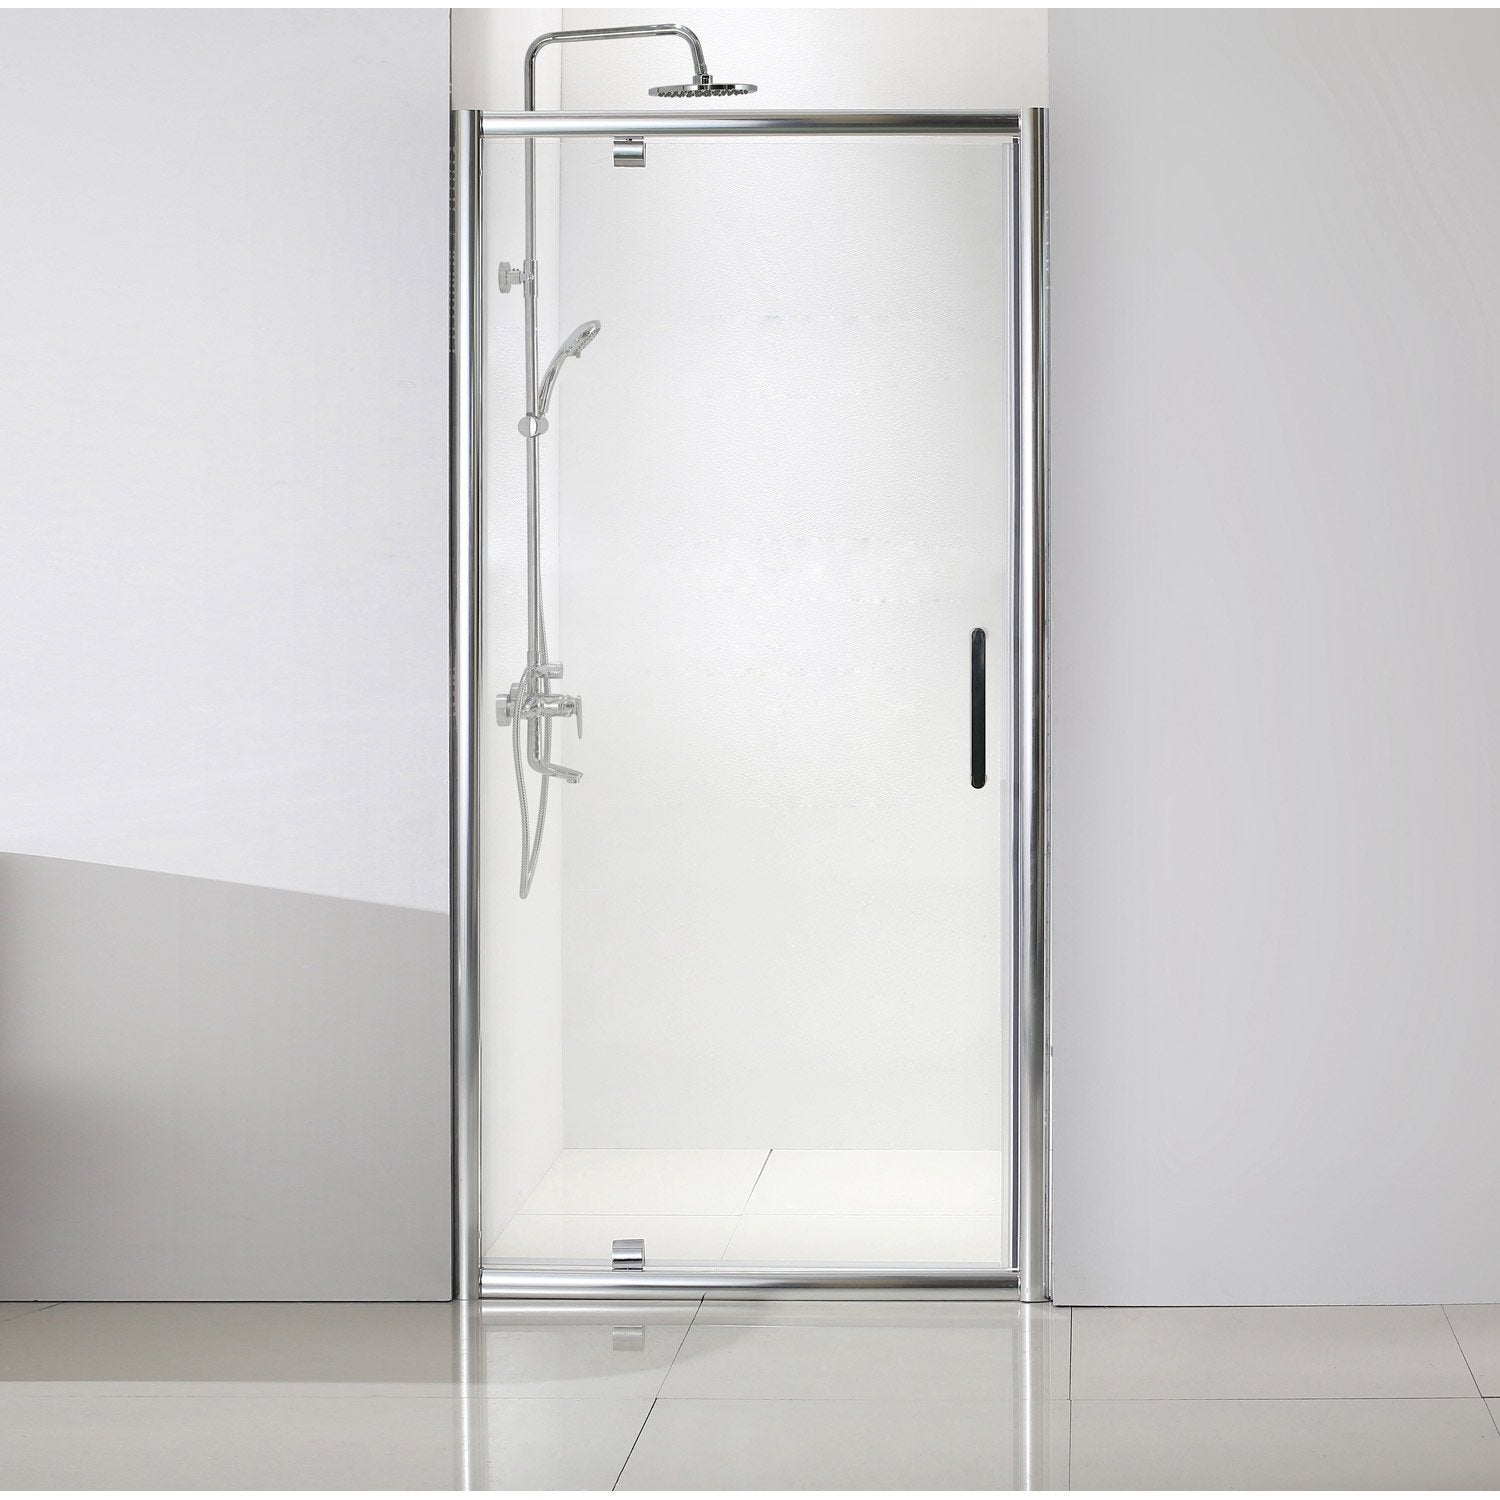 incroyable Porte de douche pivotante 90 cm, transparent, Quad